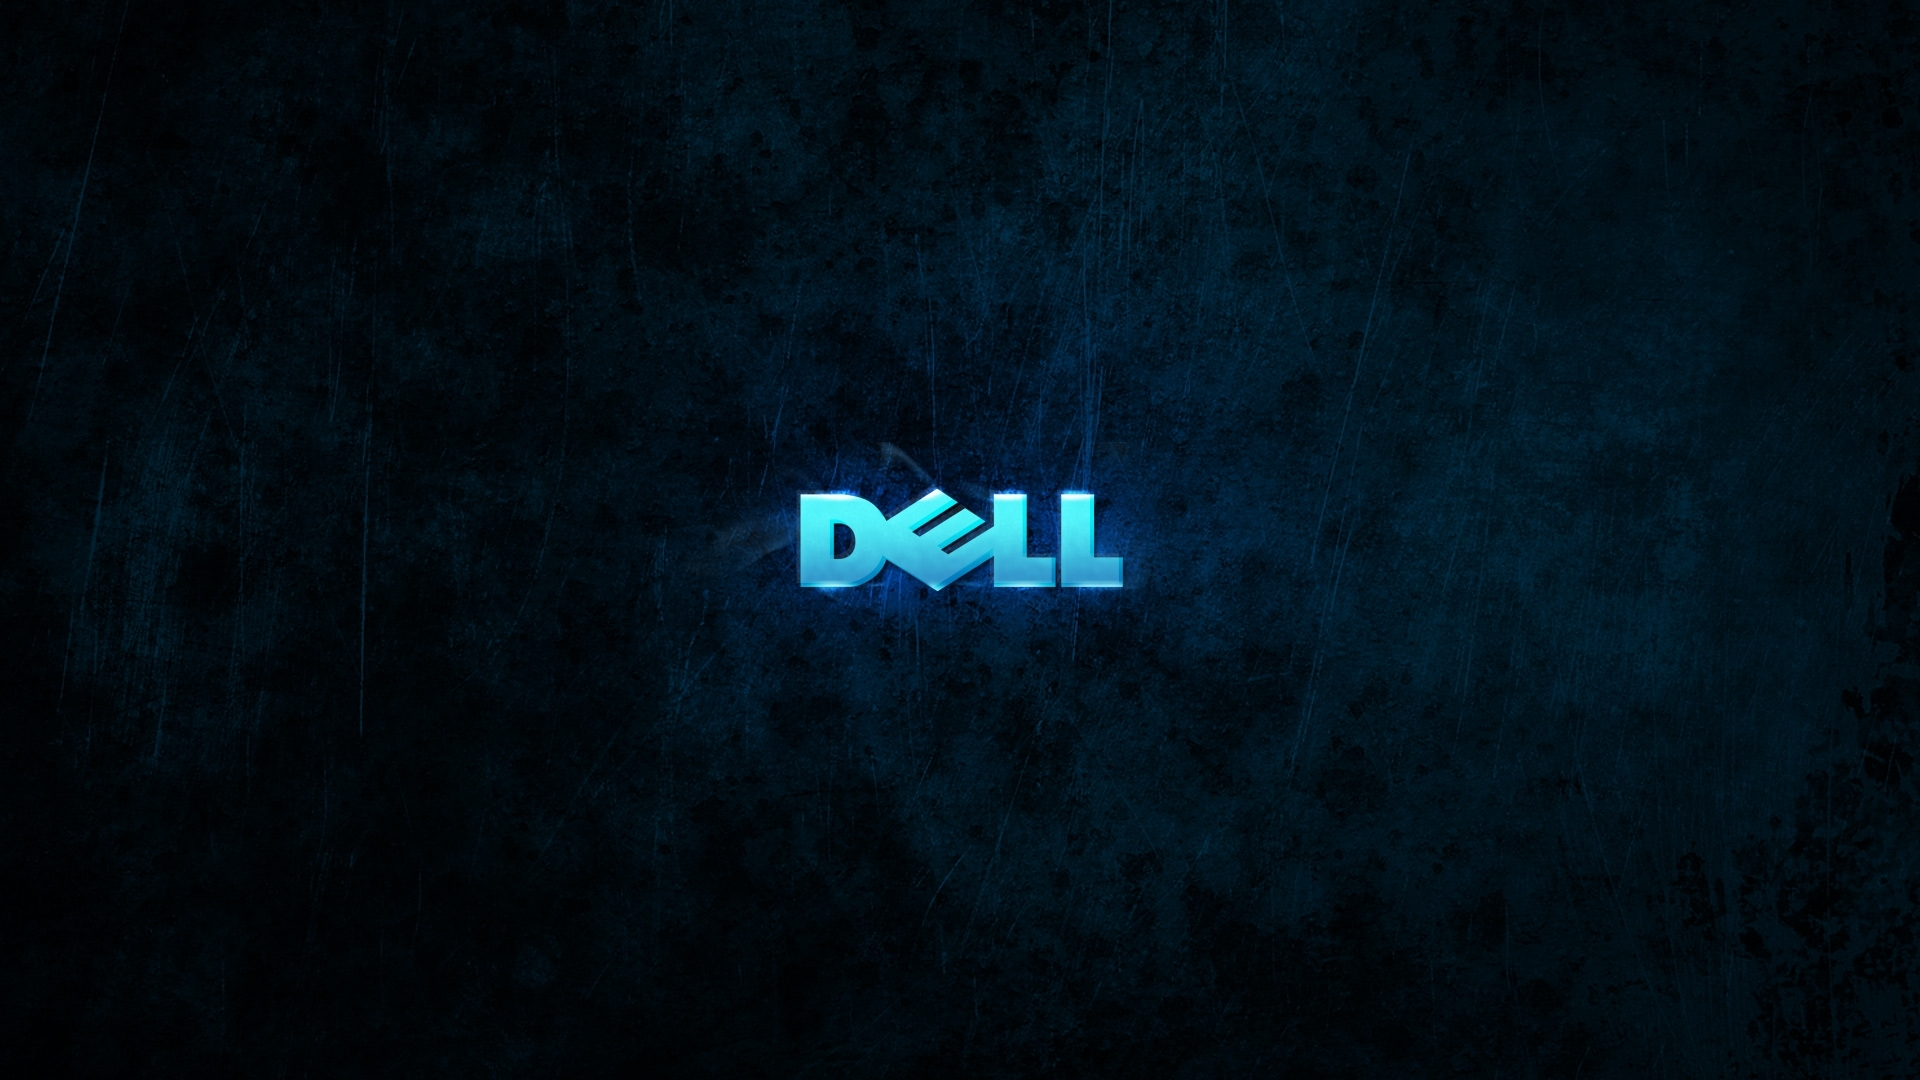 wallpaper.wiki-hd-dell-xps-background-pic-wpb0010100 - wallpaper.wiki